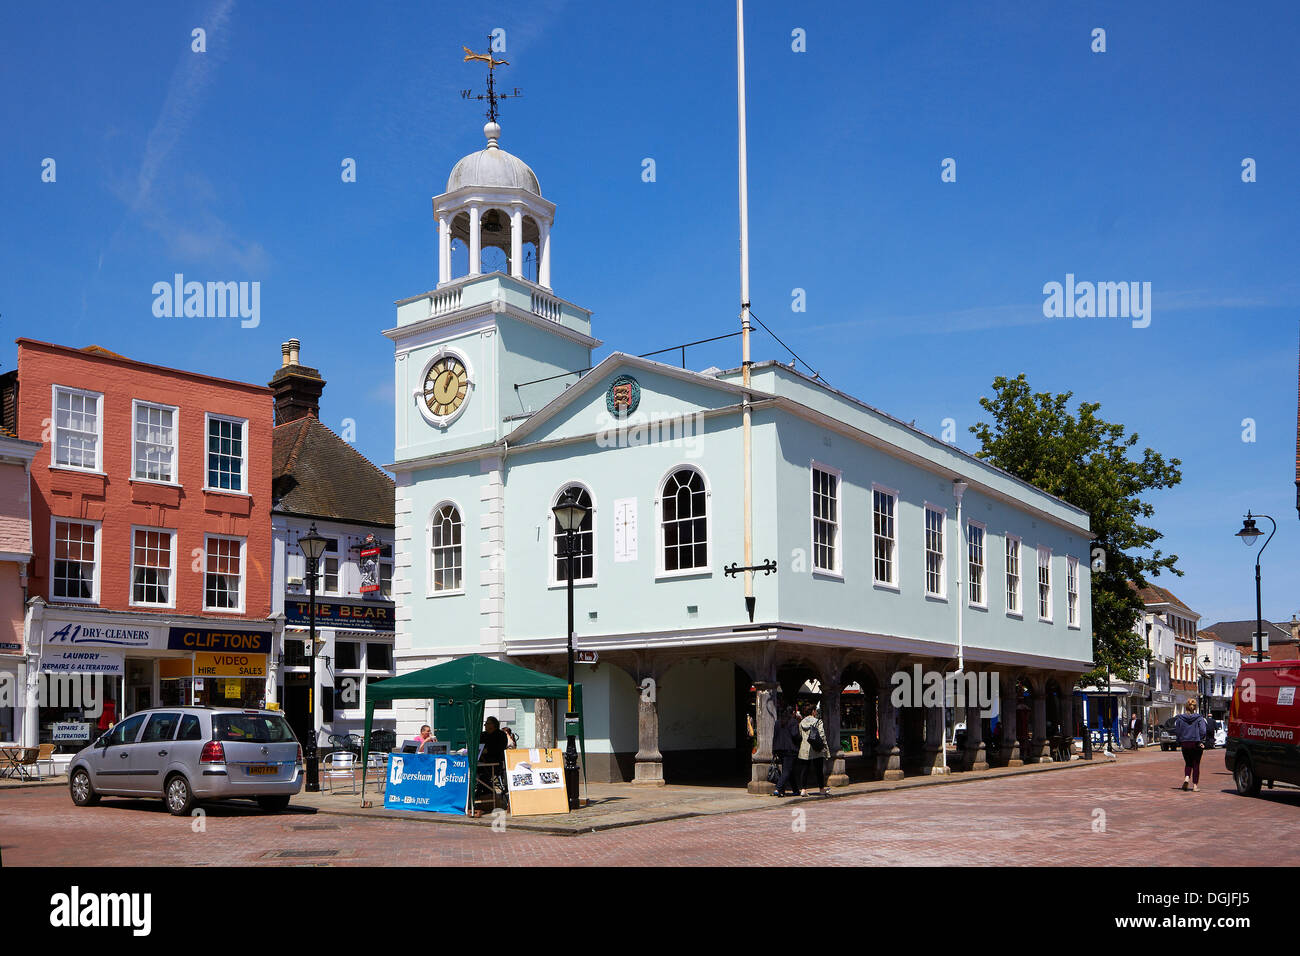 Guildhall in Faversham. - Stock Image